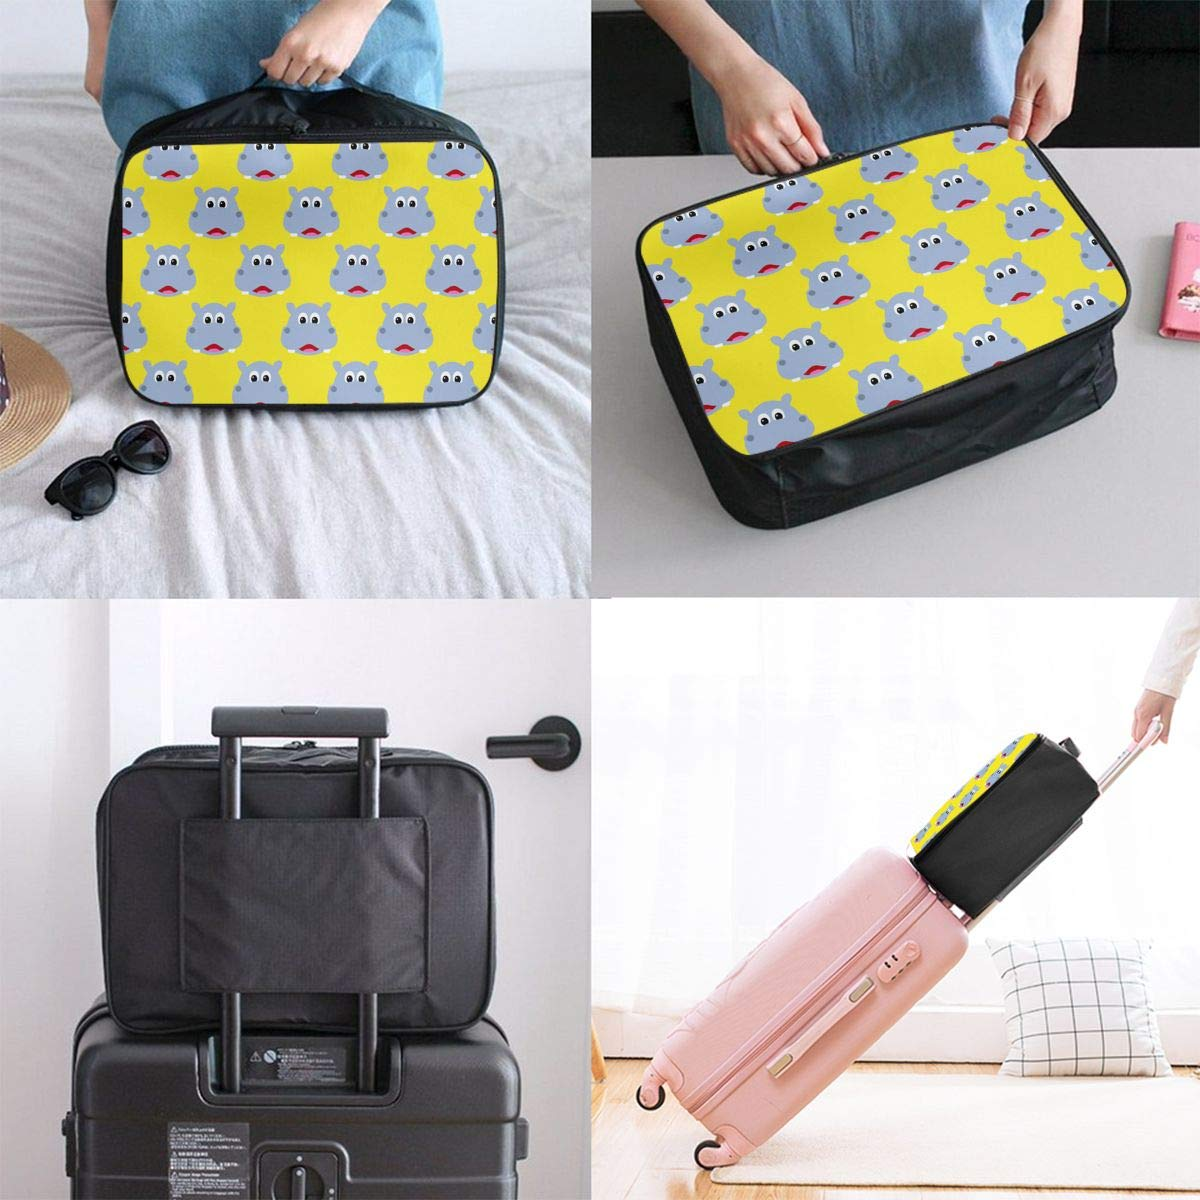 YueLJB Cute Hippo Face Lightweight Large Capacity Portable Luggage Bag Travel Duffel Bag Storage Carry Luggage Duffle Tote Bag